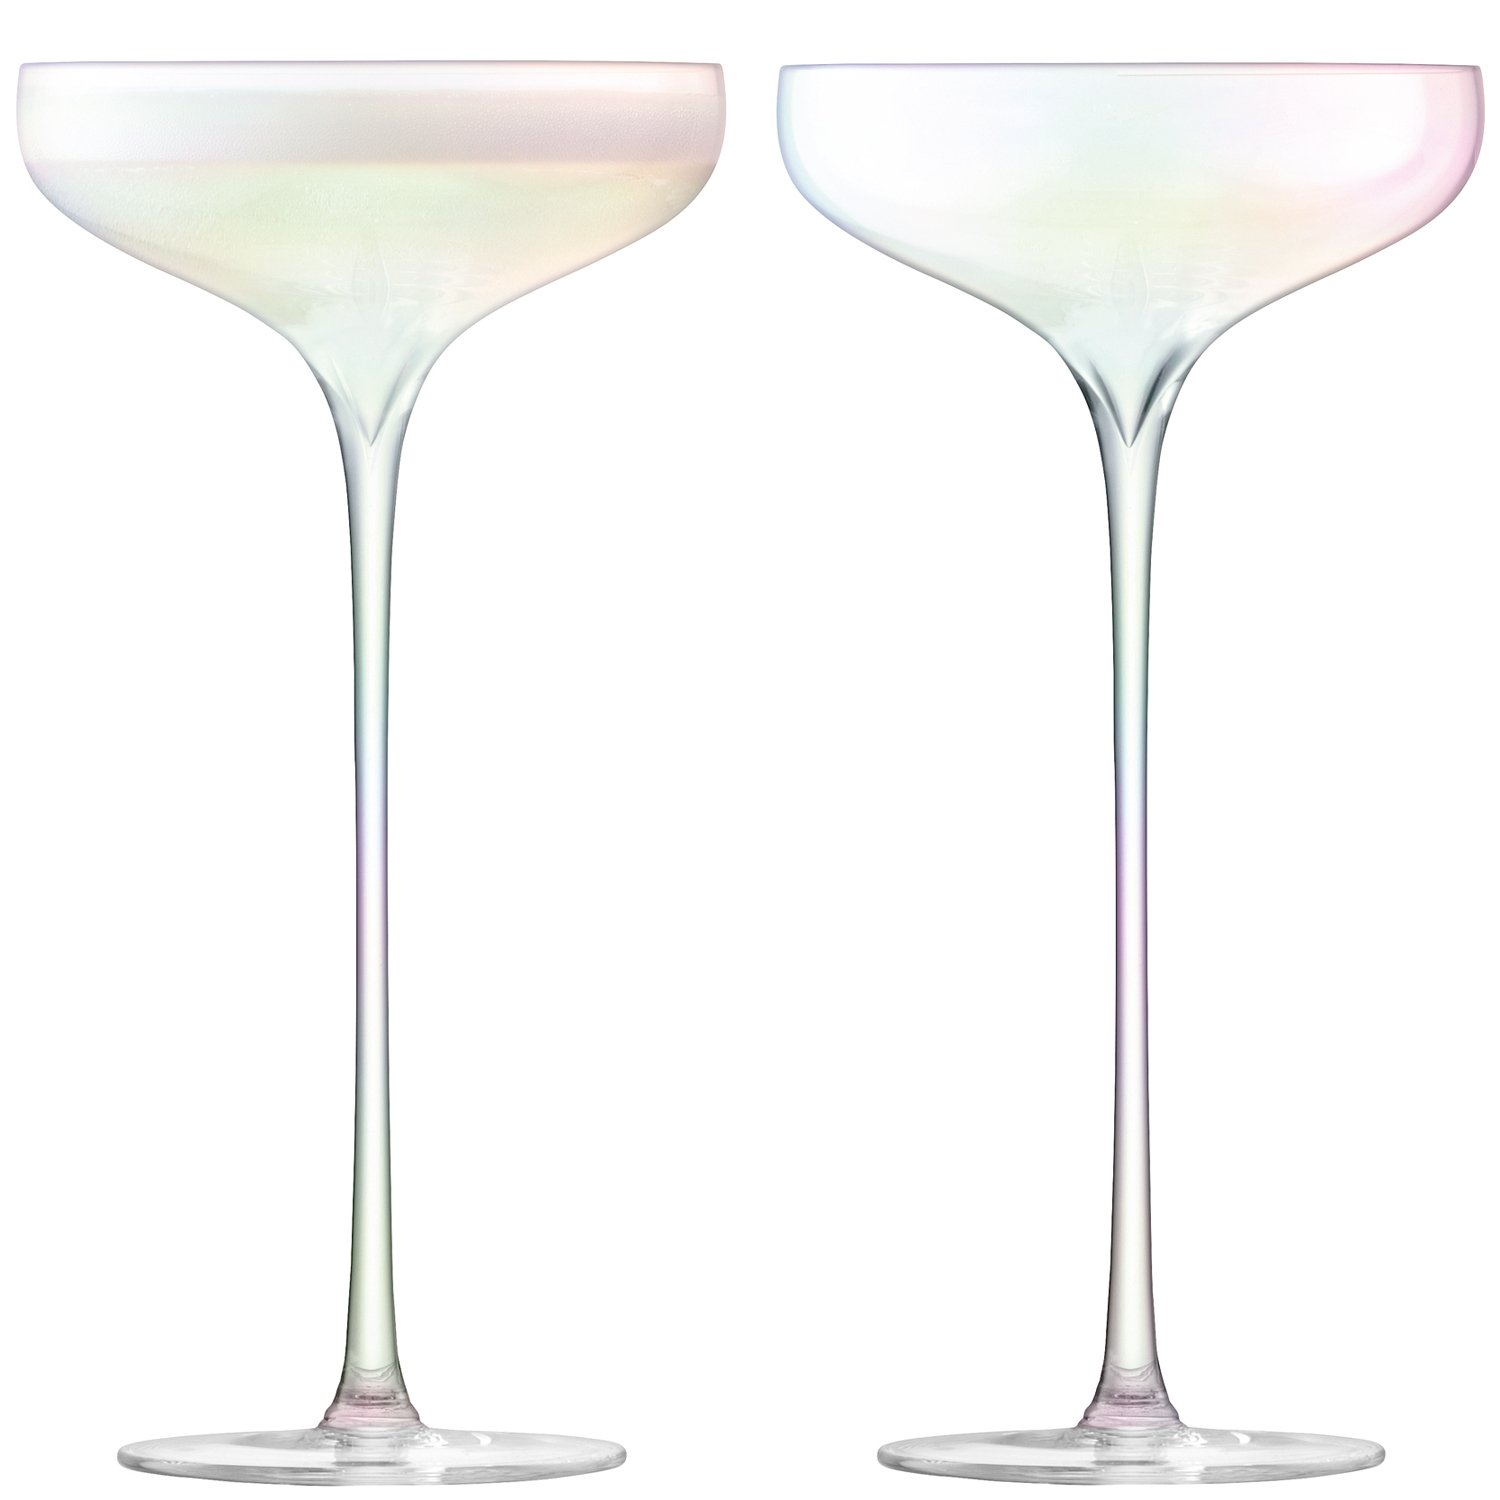 LSA International Celebrate Champagne Saucer 250 ml, 2 Piece - Mother of Pearl G1286-07-916